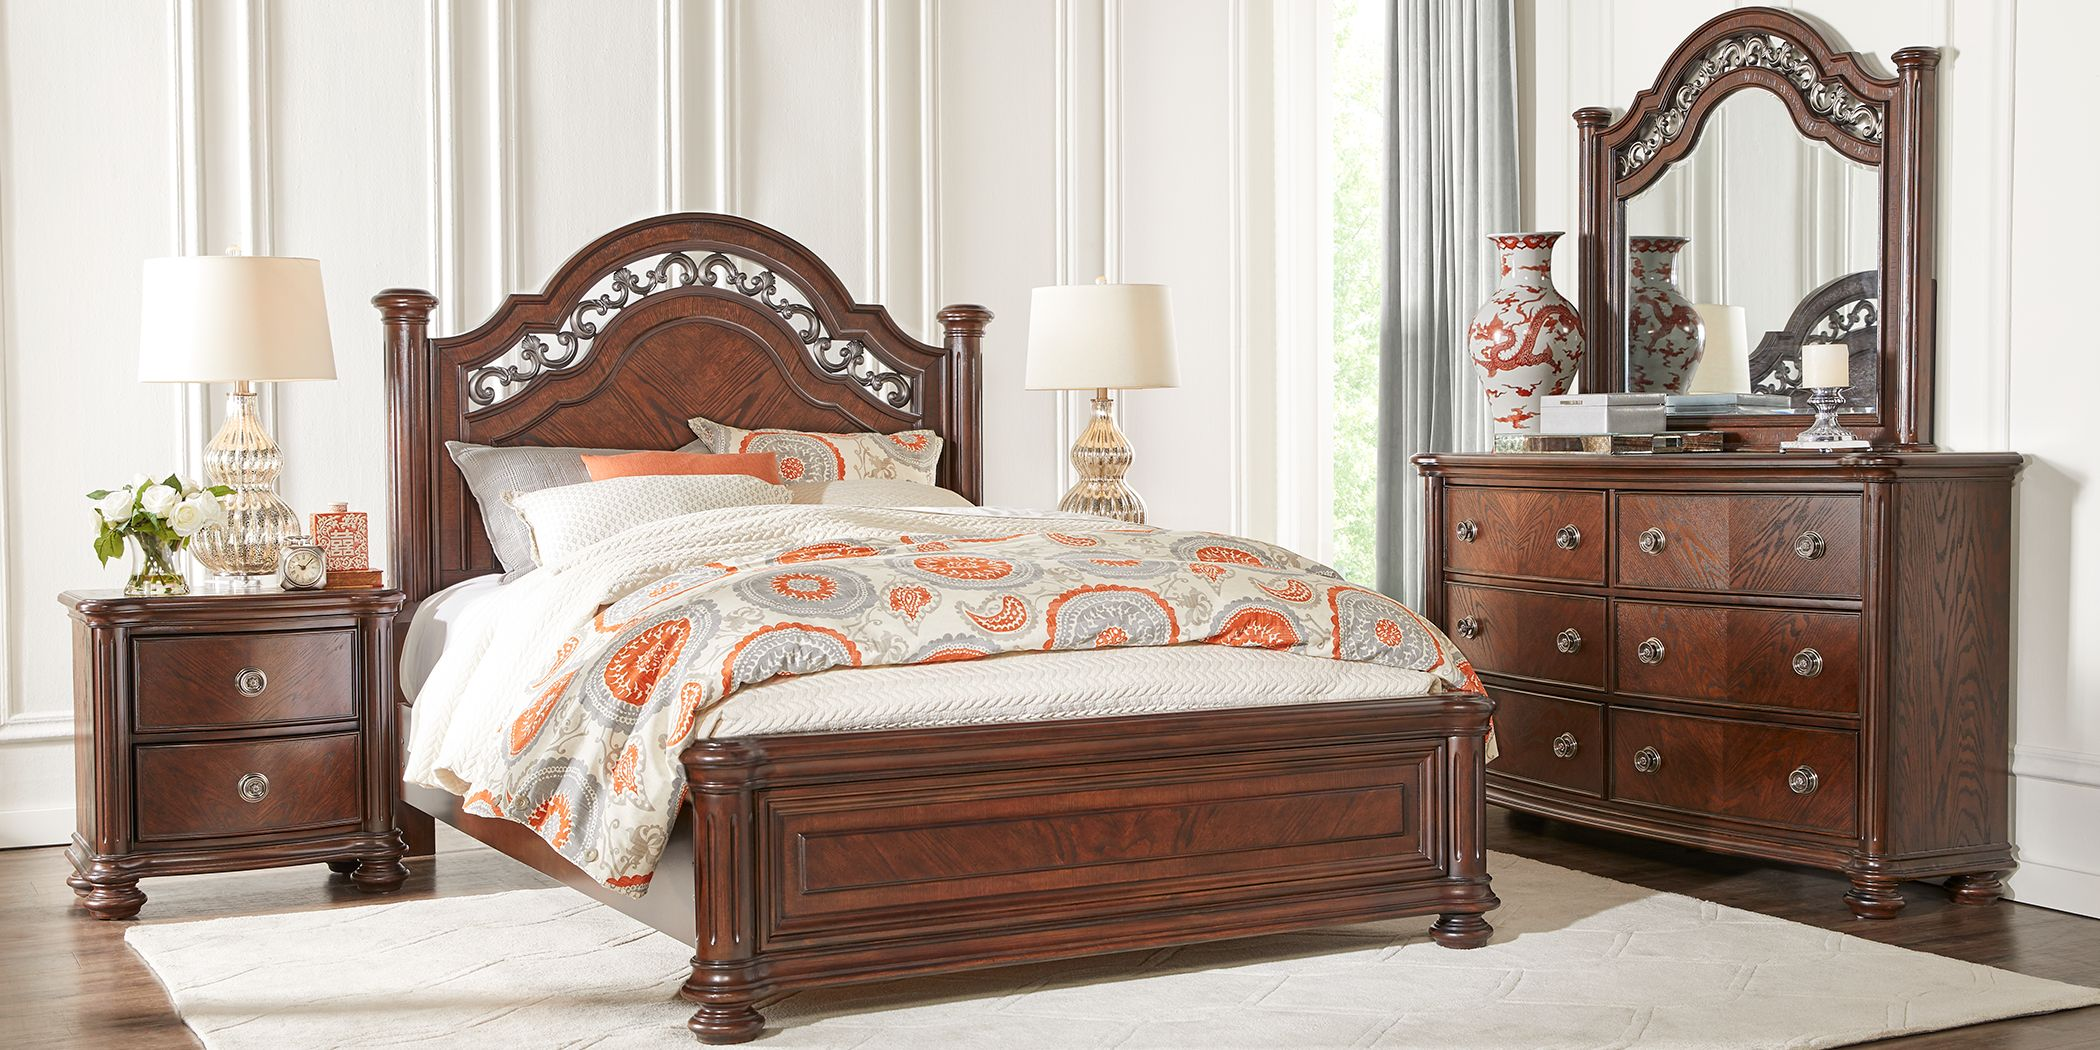 Discount Bedroom Furniture Rooms To Go Outlet